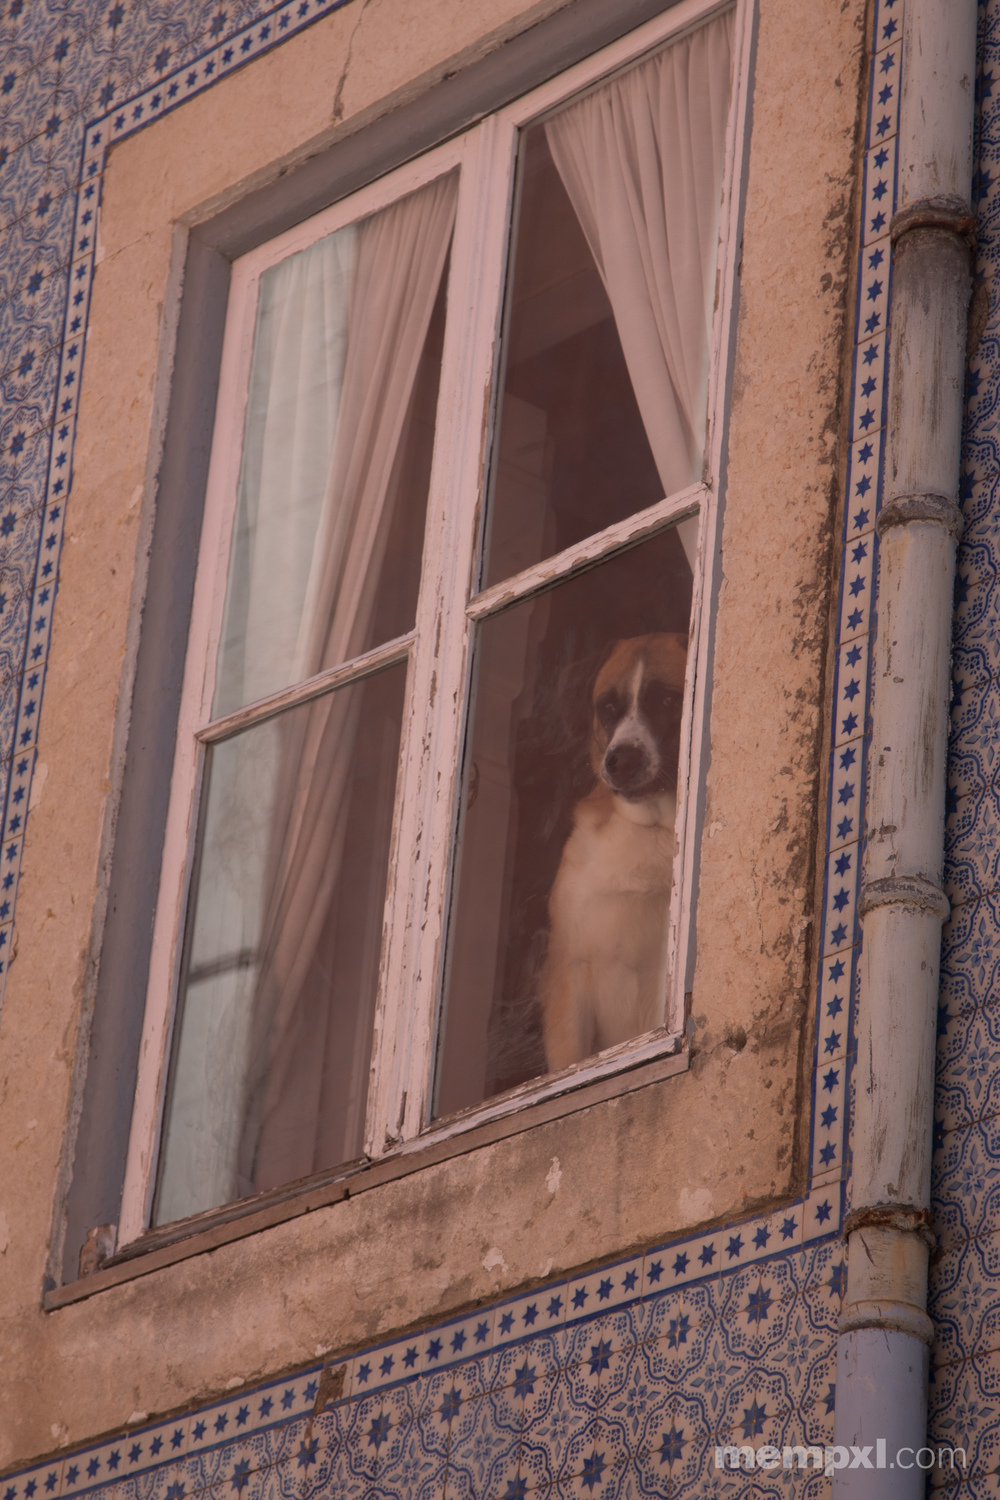 The Doggy in the Window.jpg